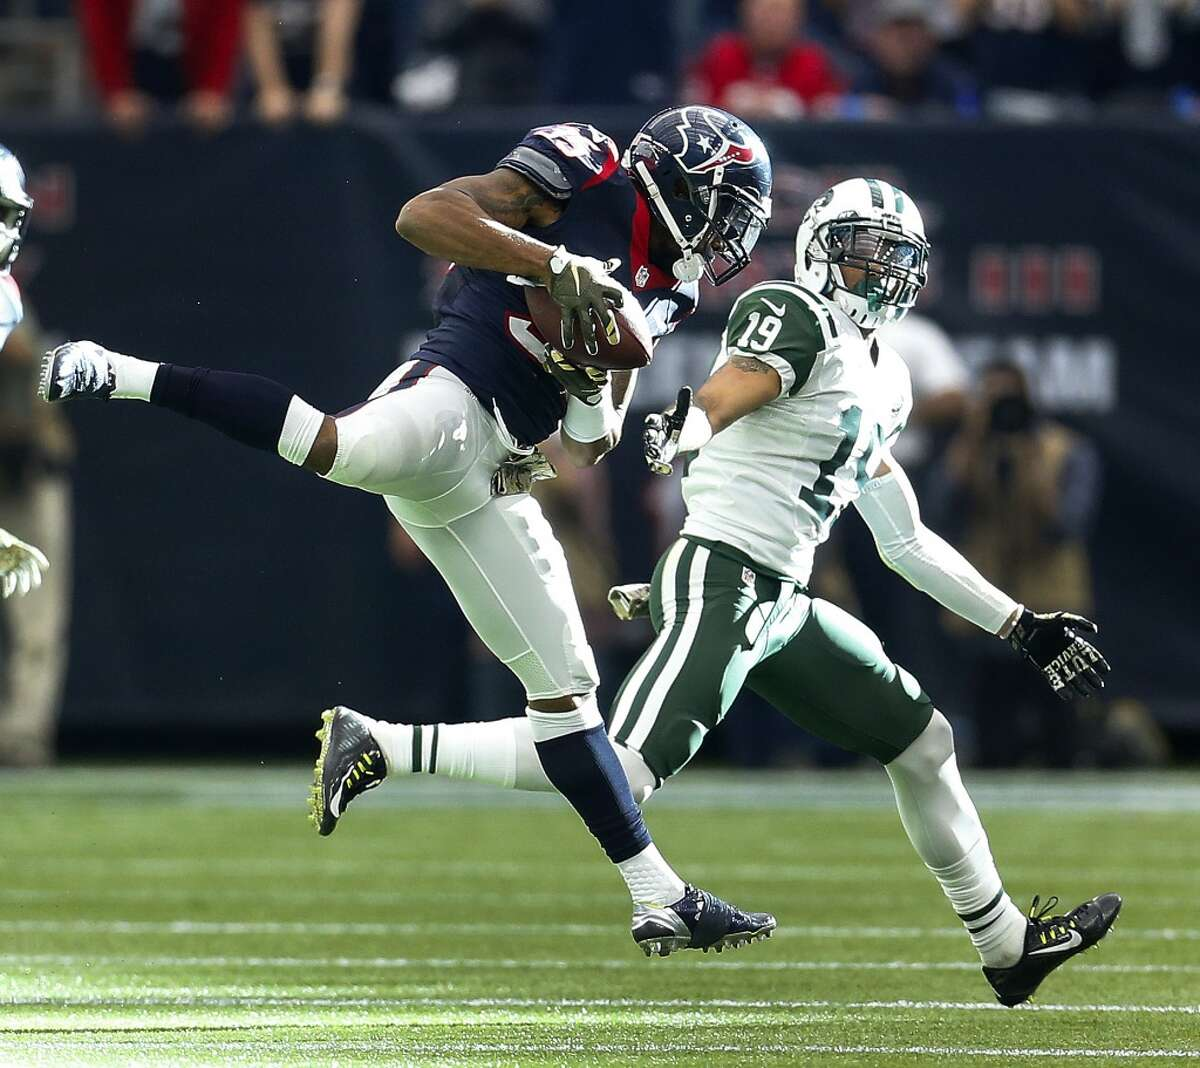 Houston Texans defensive back Eddie Pleasant (35) hauls in an interception on a pass intended for New York Jets wide receiver Devin Smith (19) during the fourth quarter of an NFL football game at NRG Stadium on Sunday, Nov. 22, 2015, in Houston. ( Karen Warren / Houston Chronicle )